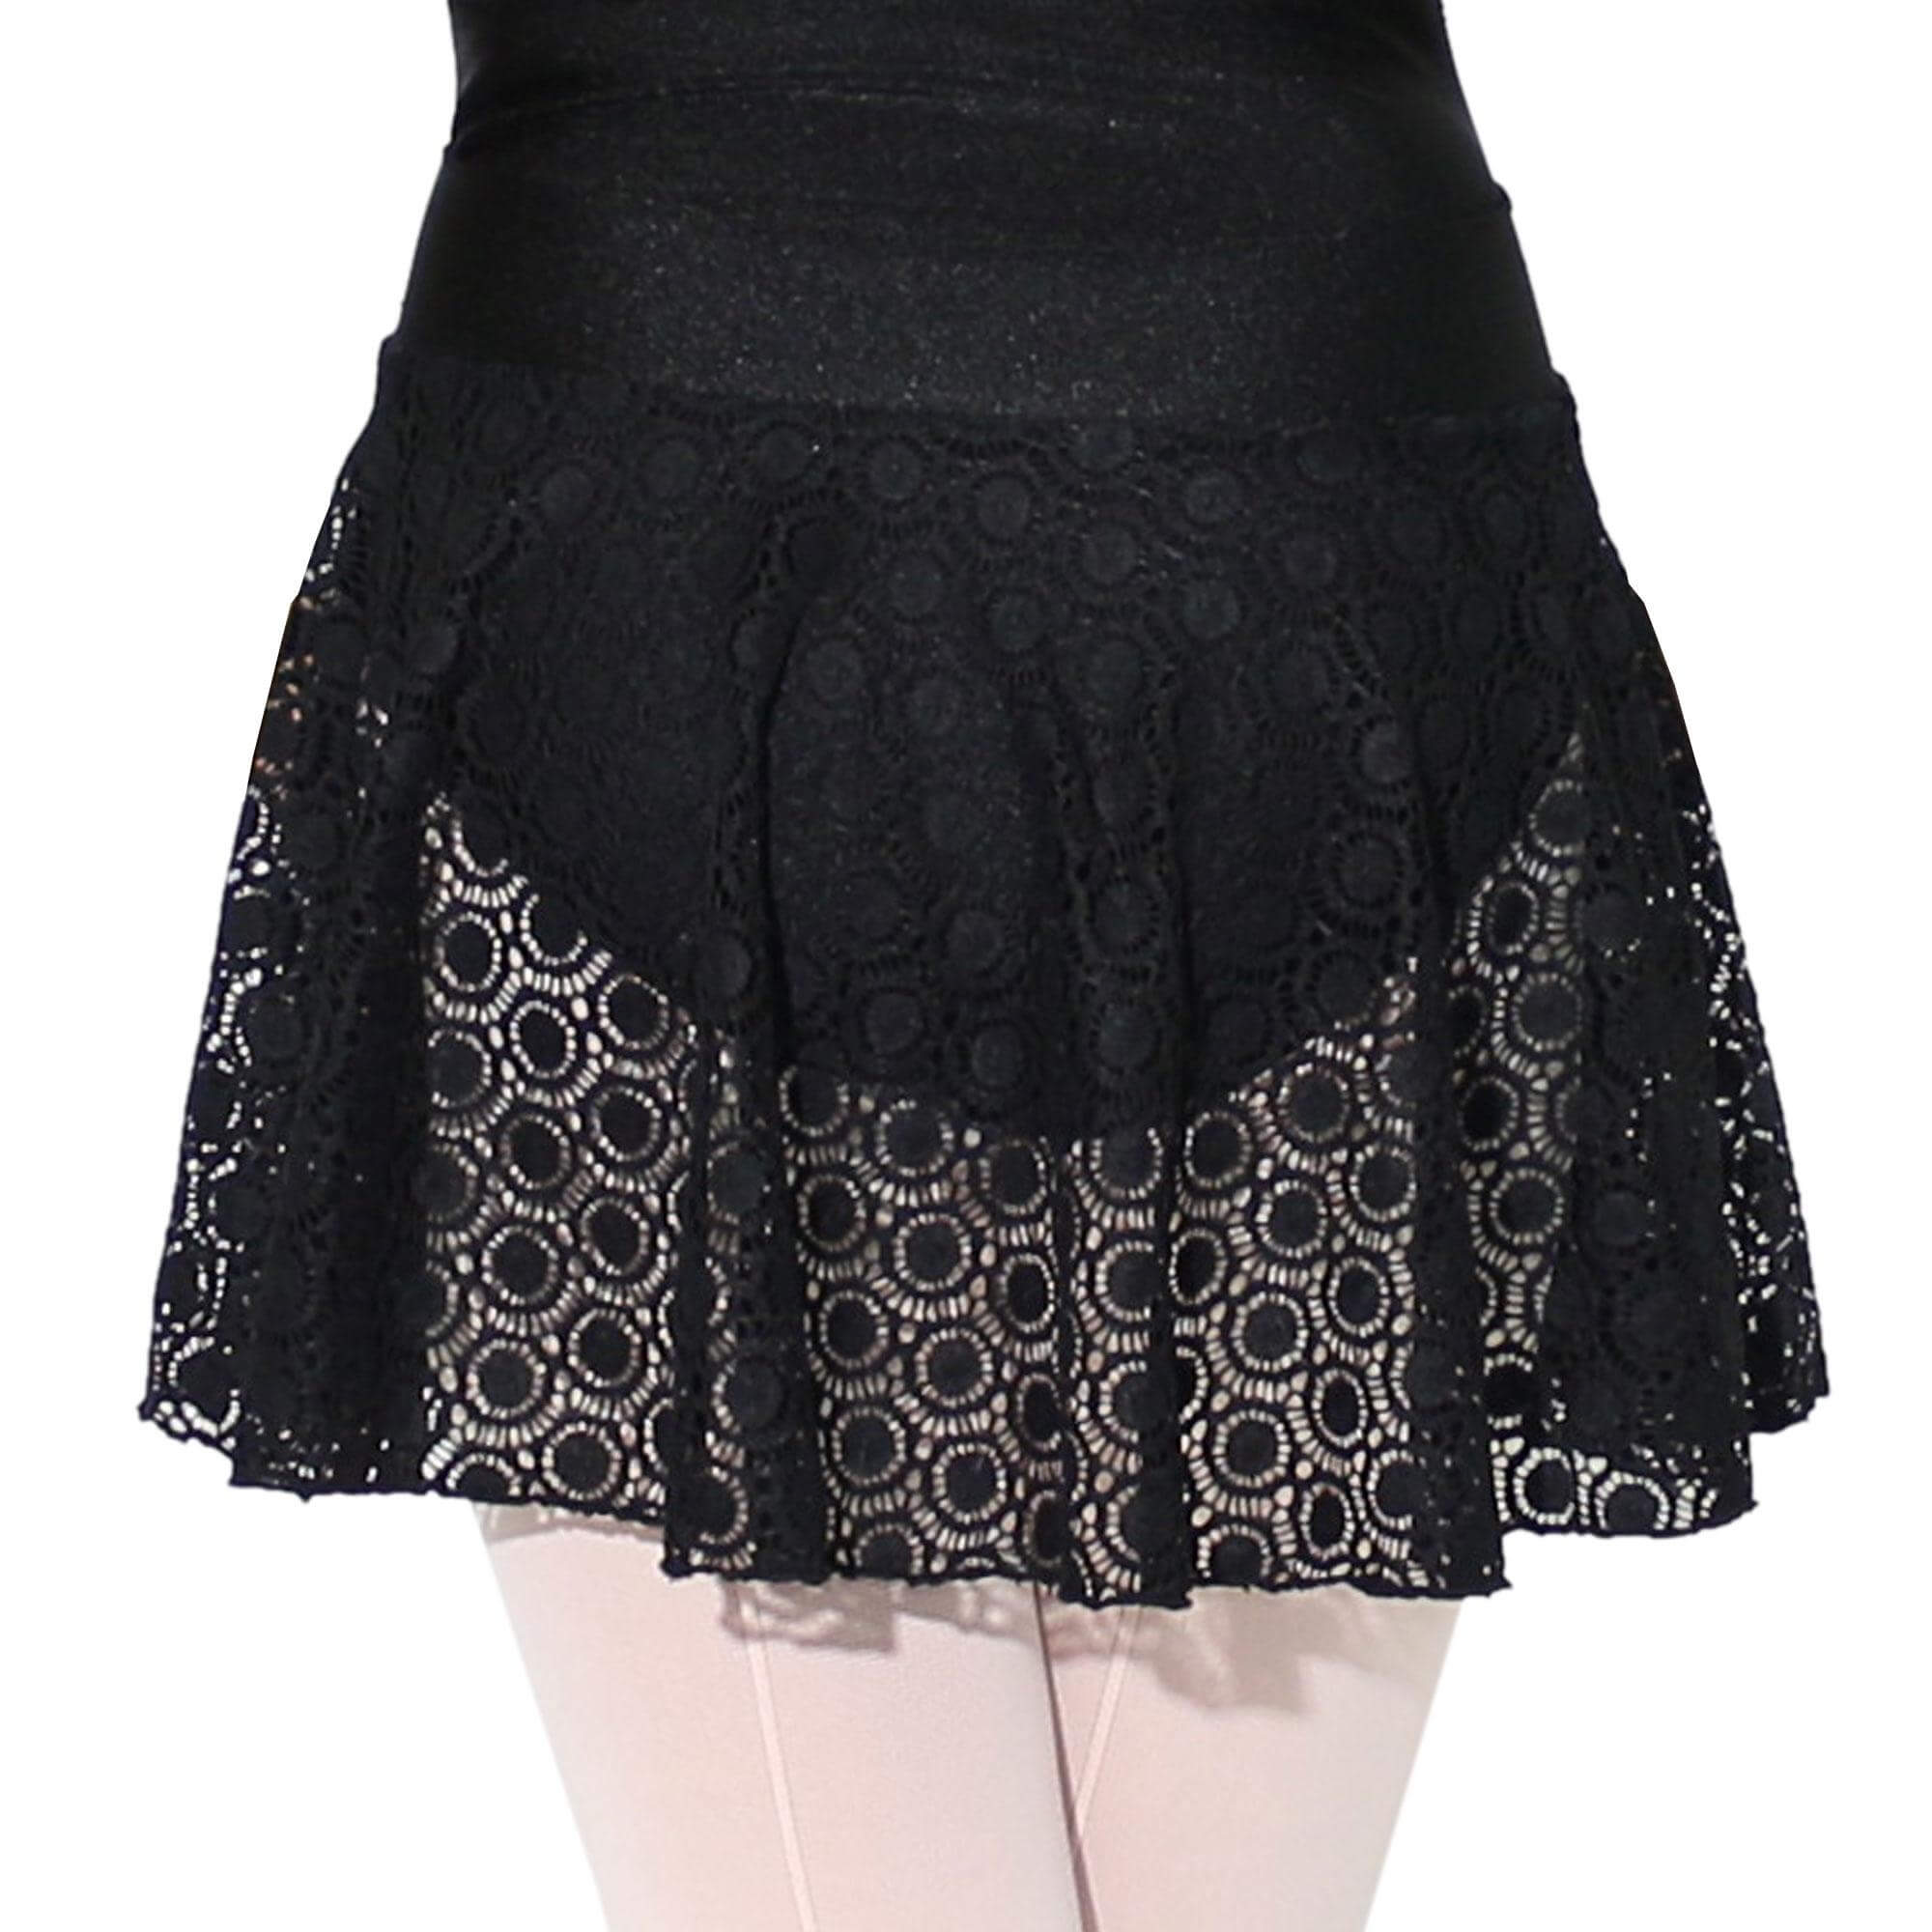 Reflectionz Crochet Skirt - Click Image to Close